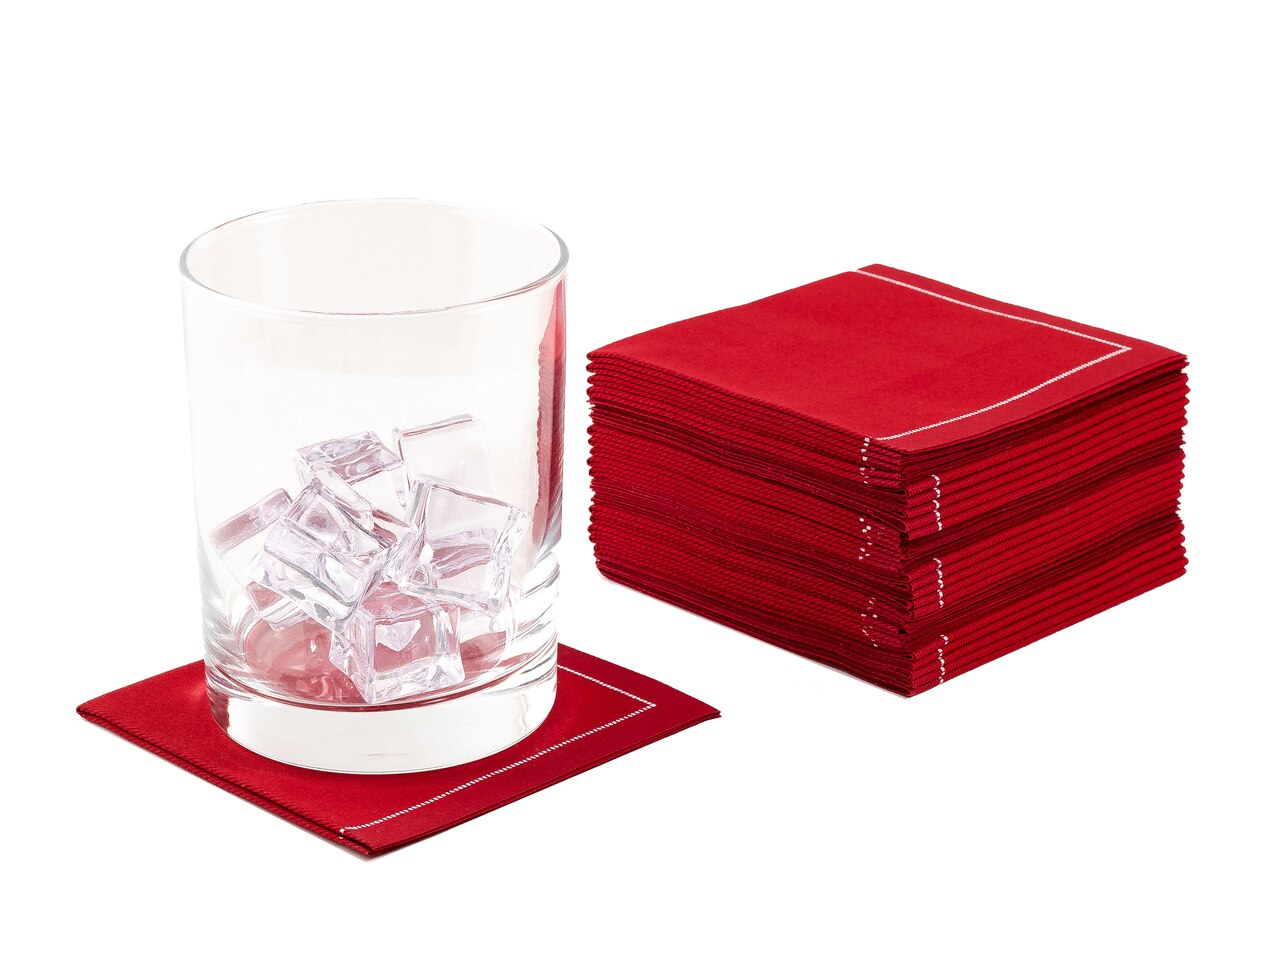 "Red Cotton 1/4 Fold Cocktail (200 GSM) - 8"" x 8"" (folded 4"" x 4"") - 600 units"